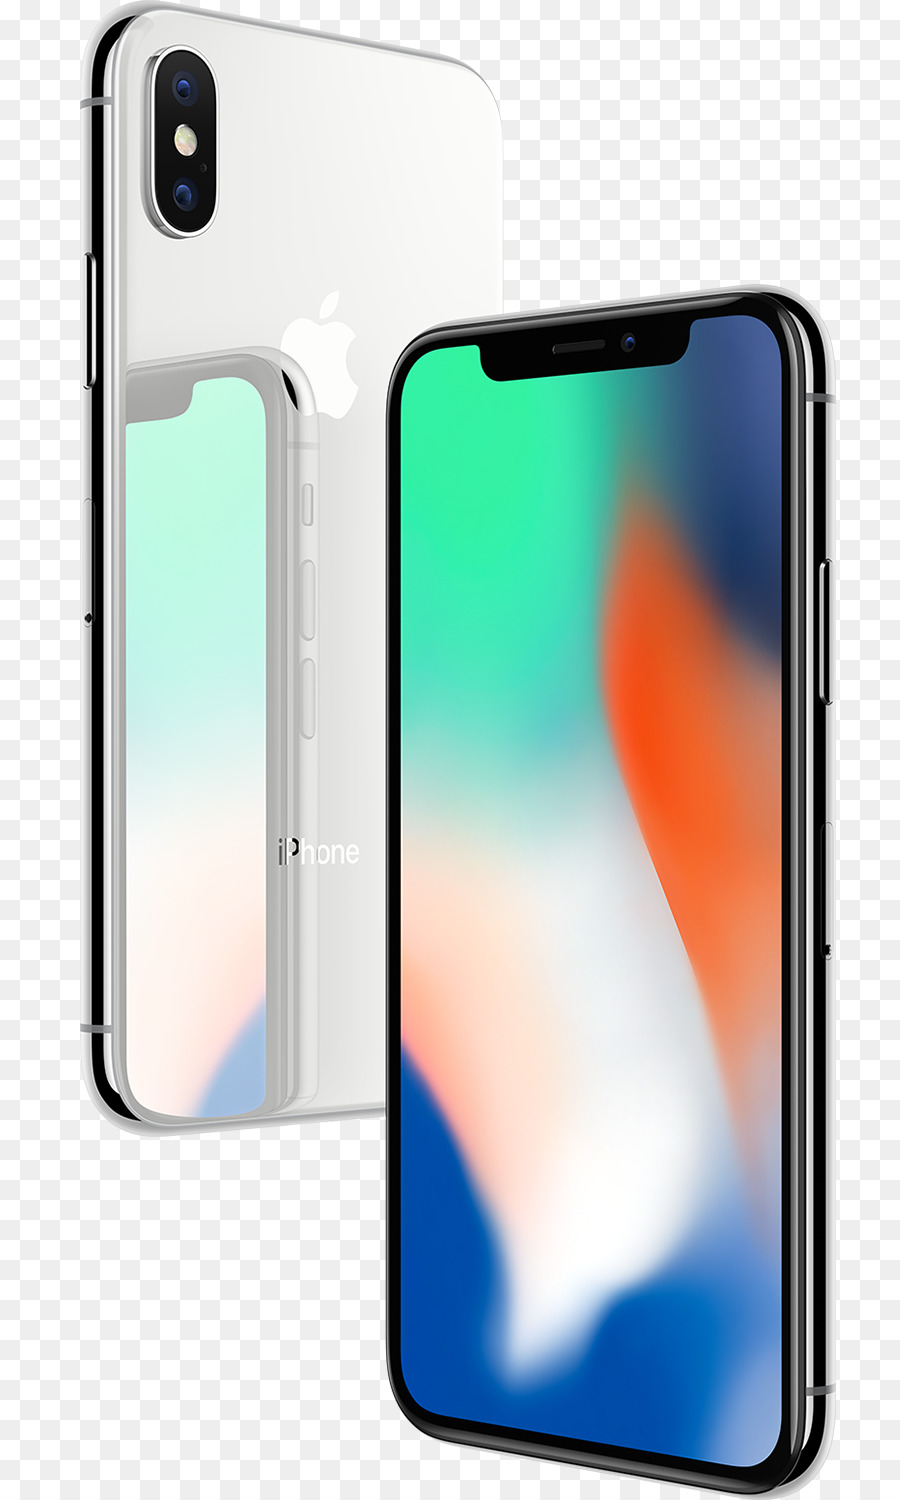 Descarga gratuita de Iphone X, Apple Iphone 8 Plus, Iphone 7 imágenes PNG